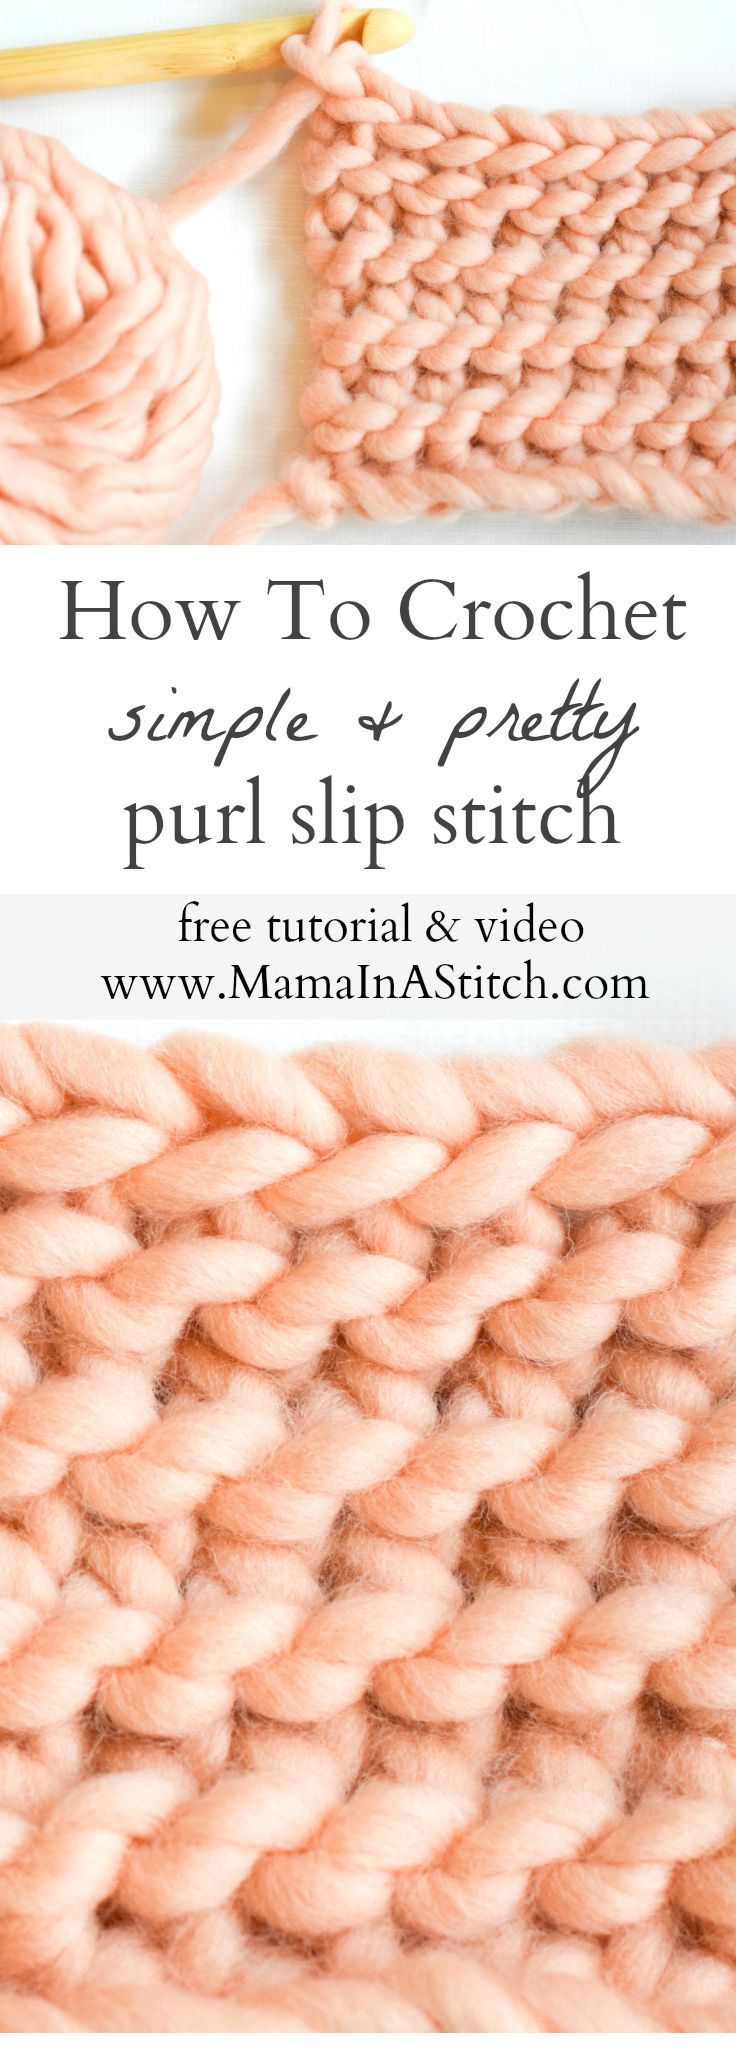 Learn A New Crochet Stitch: Purl Slip Stitch (via MamaInAStitch)